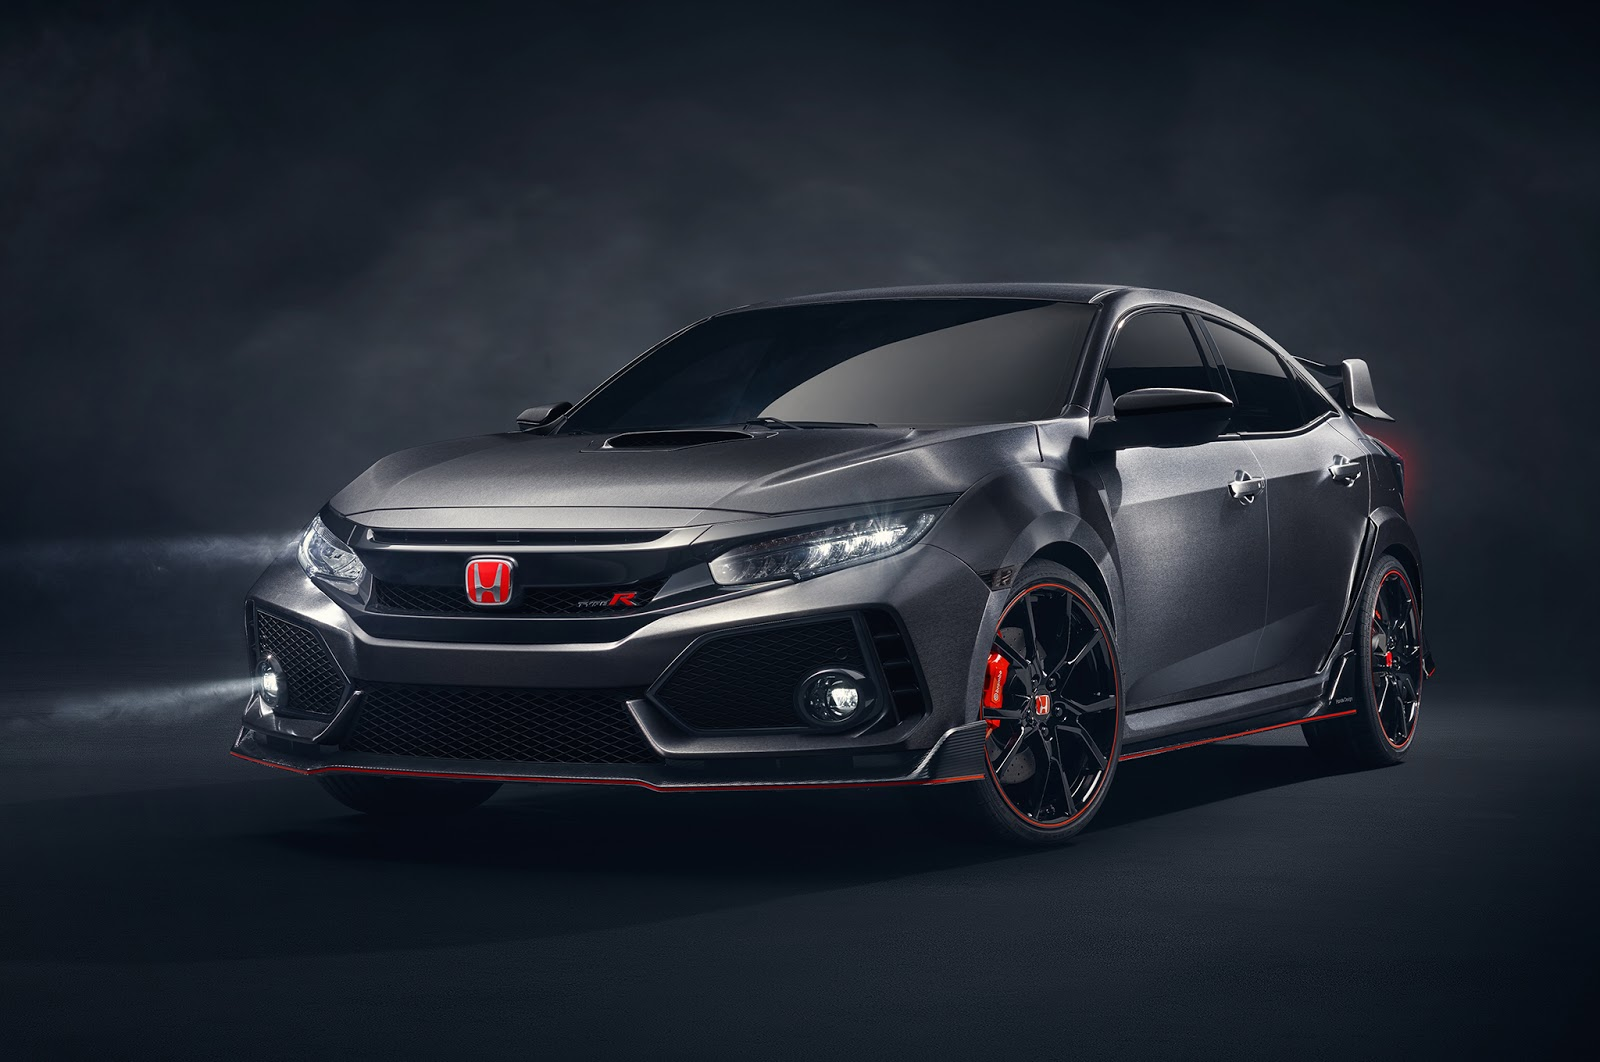 2017 honda civic type r prototype bows in at paris motor show. Black Bedroom Furniture Sets. Home Design Ideas